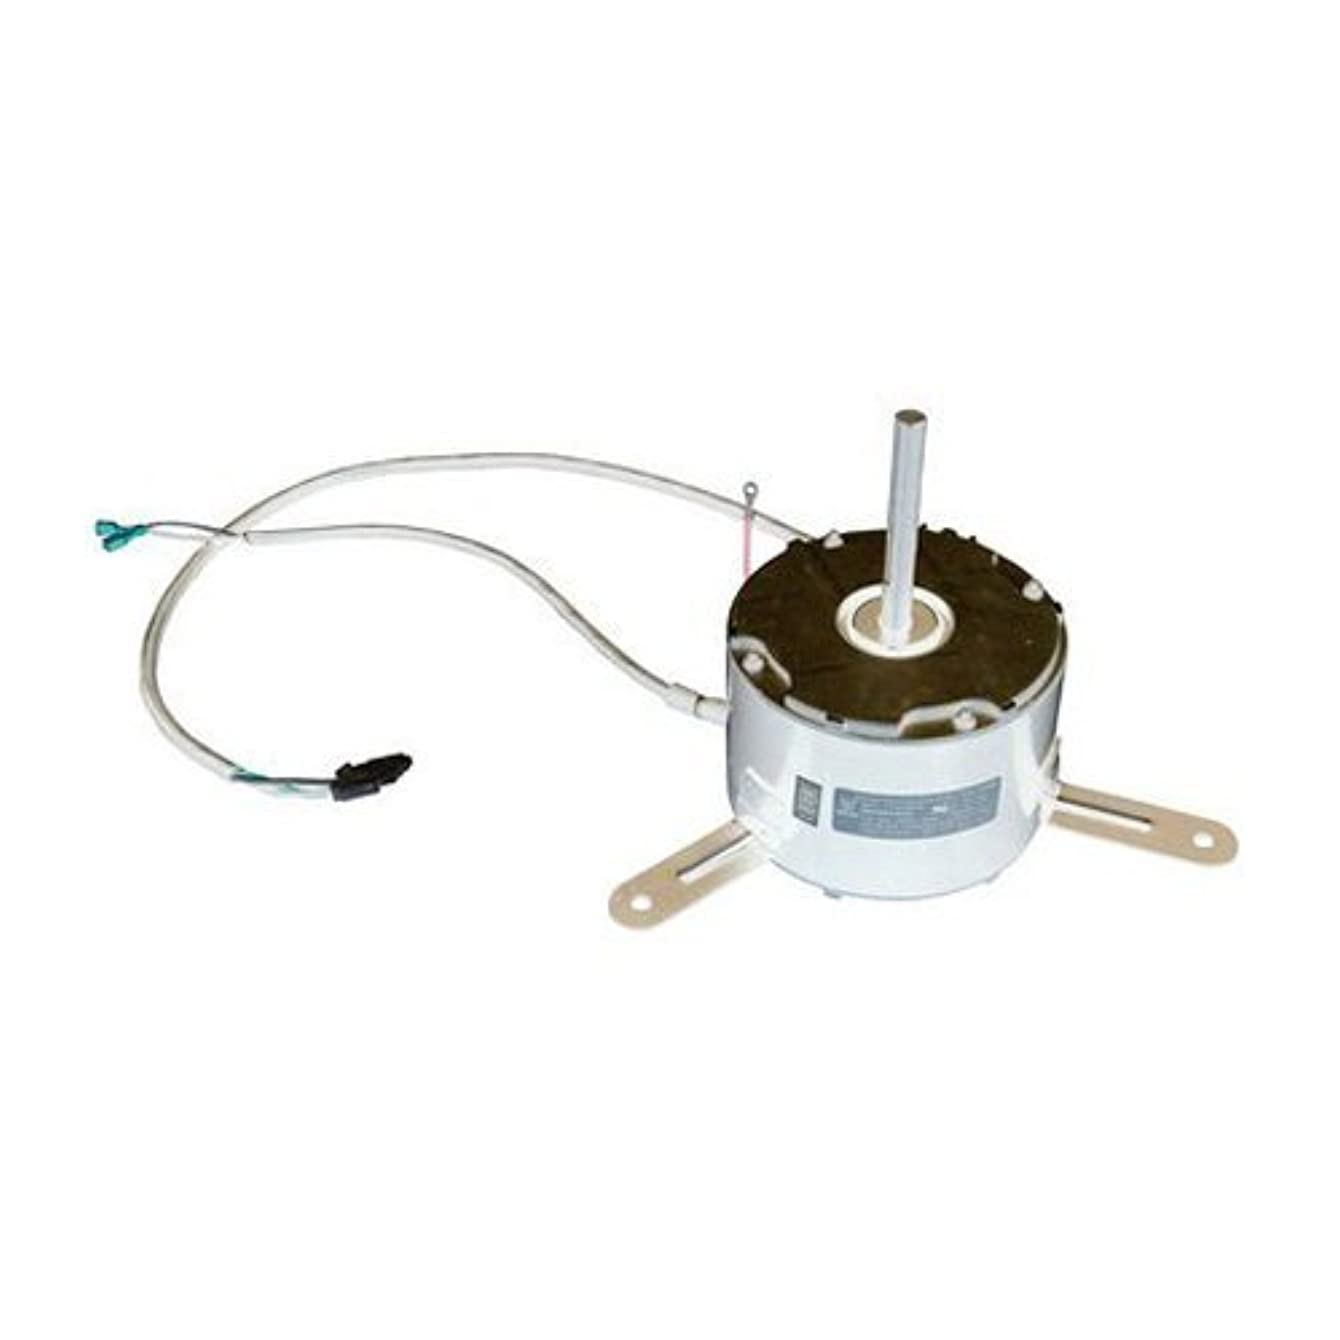 Portacool MOTOR-016-01 2 Speed Blower Motor, Fits Cyclone 2000 Evaporative Coolers